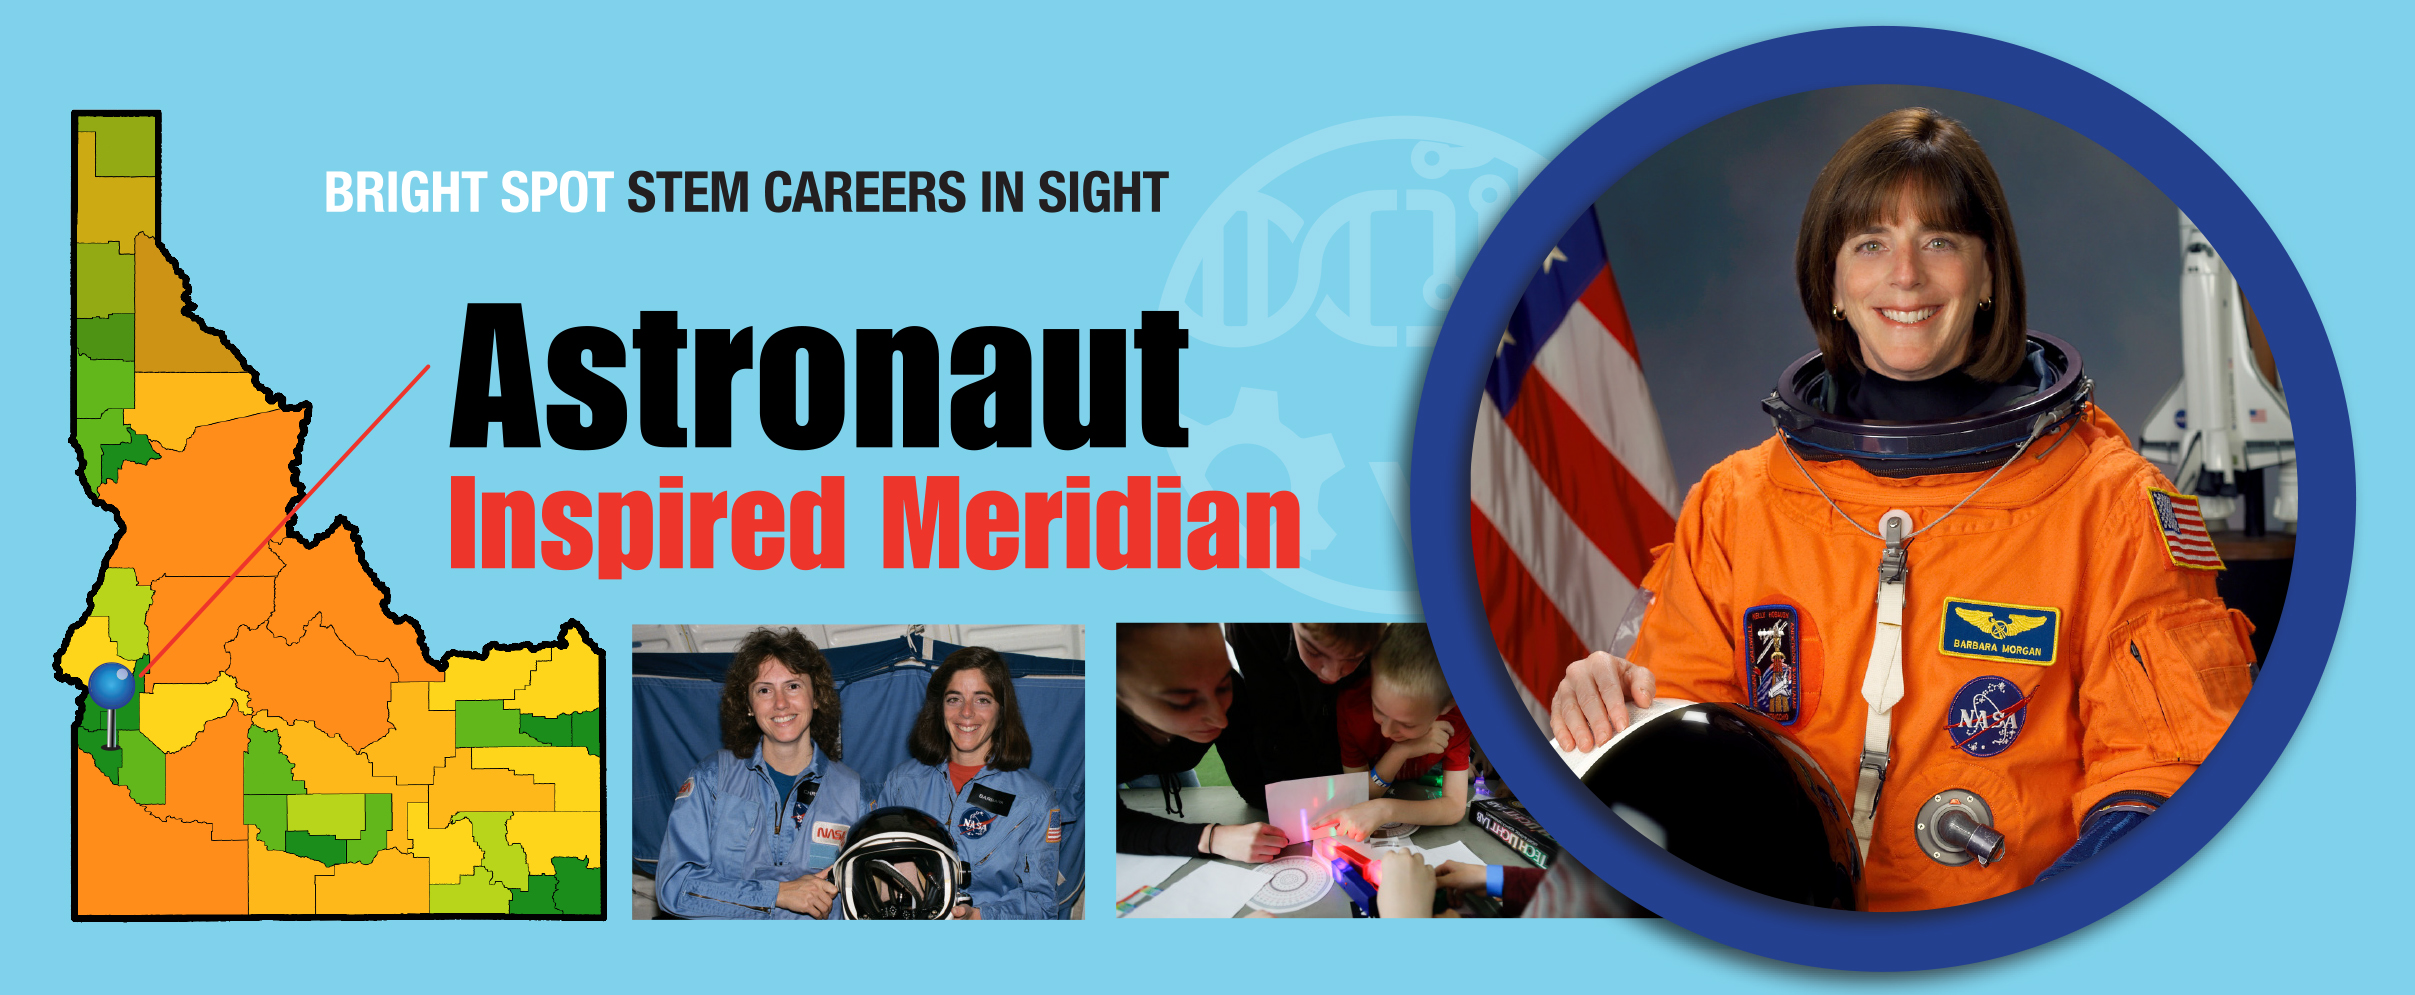 Bright Spot: Astronaut Inspired Meridian